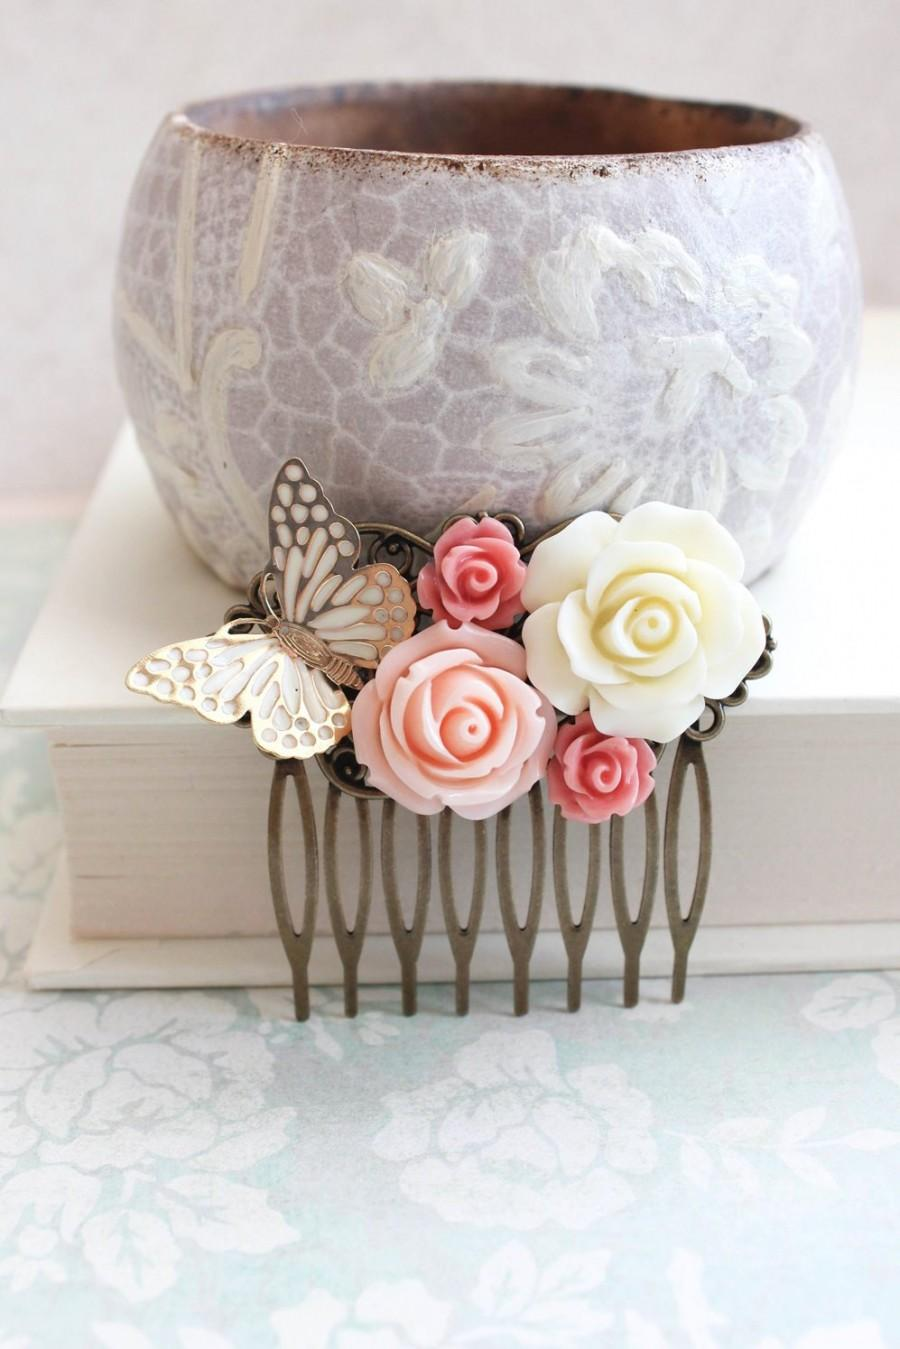 Свадьба - Bridal Hair Comb Romantic Gold Wedding Hair Accessories Butterfly Floral Collage Comb Country Chic Blush Pink Rose Quartz Bridesmaids Gift